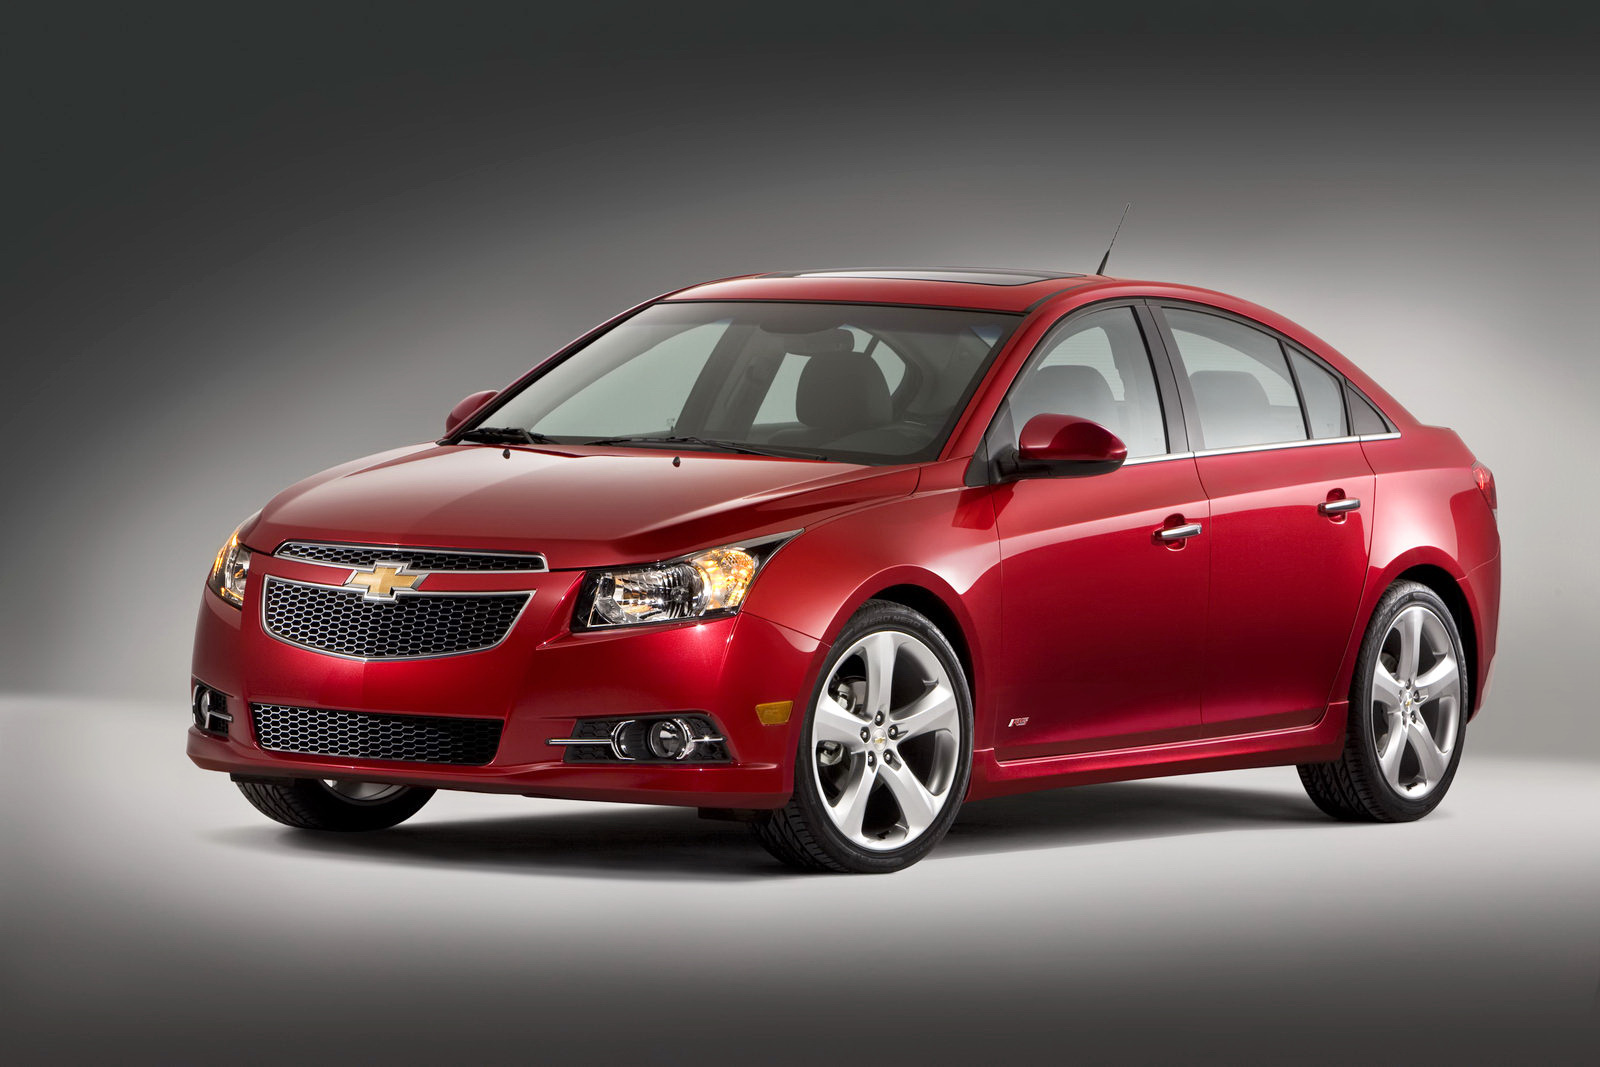 a used cruze oshawa gm dealer corners the market on 2011 pre owned used chevy cruze skidmarx. Black Bedroom Furniture Sets. Home Design Ideas